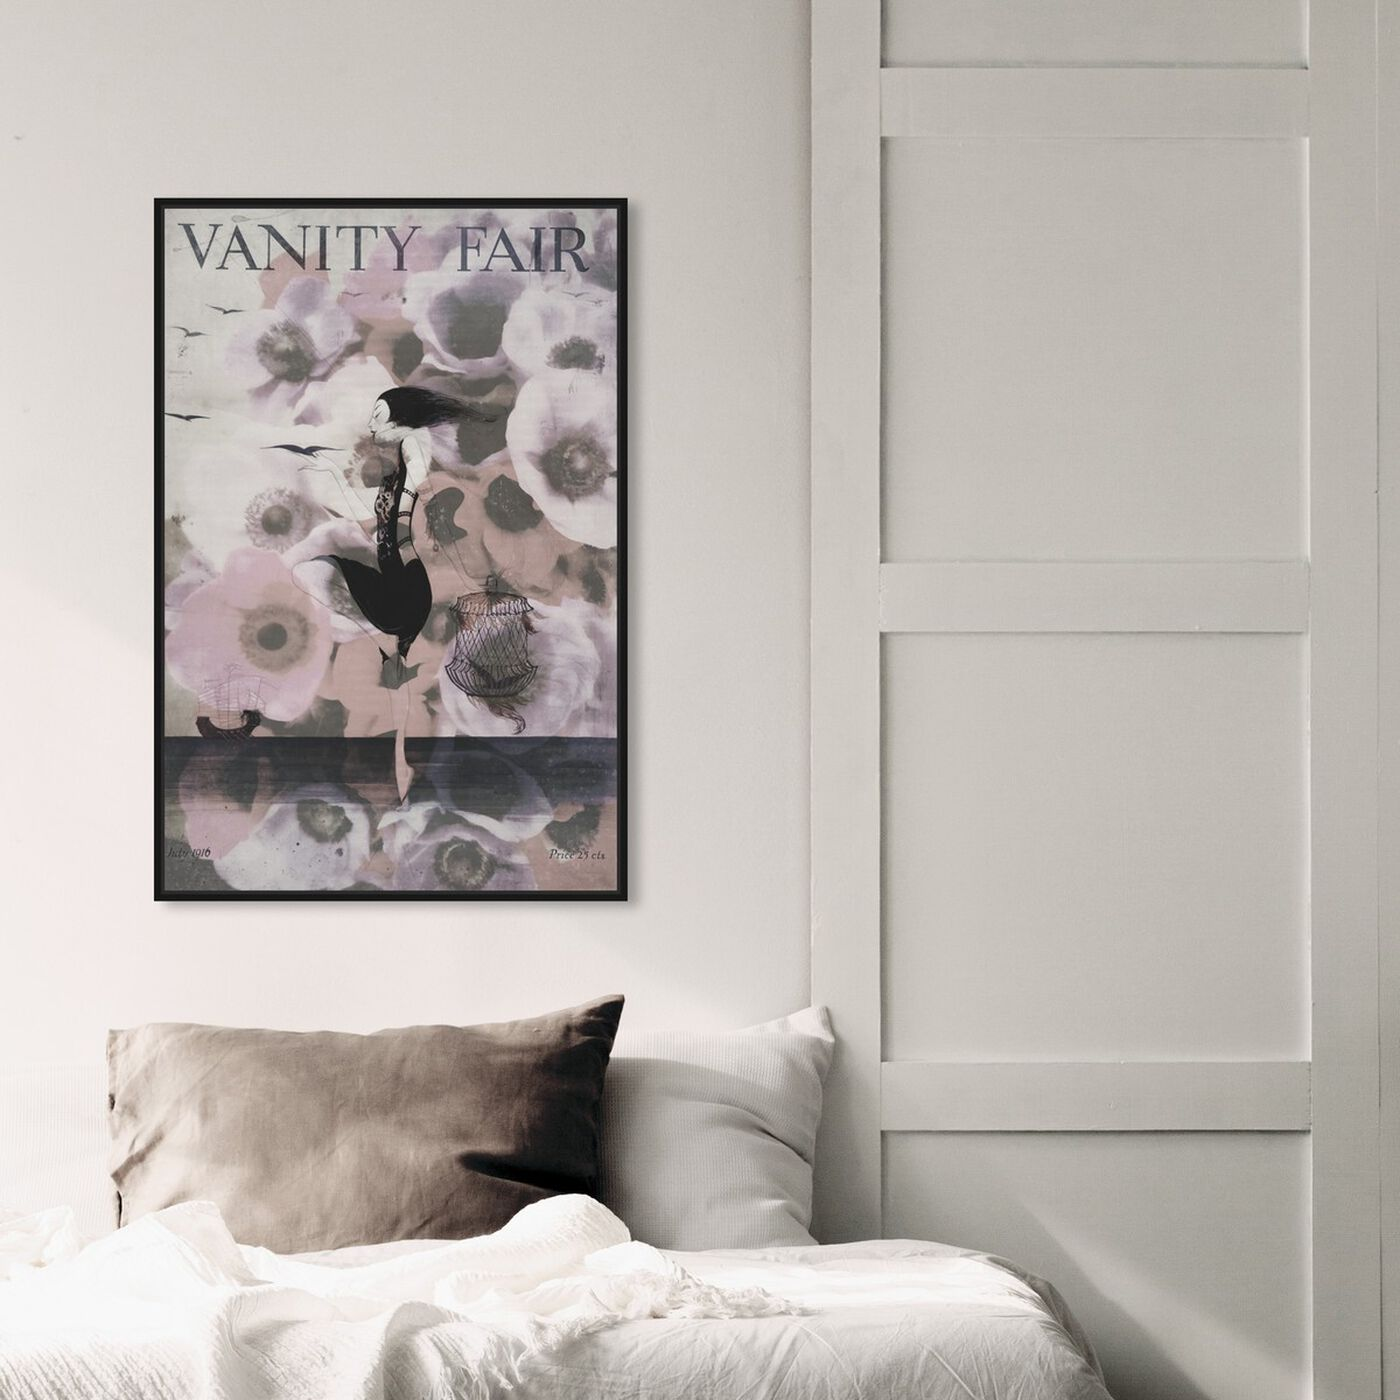 Hanging view of Vanity Fair featuring advertising and publications art.